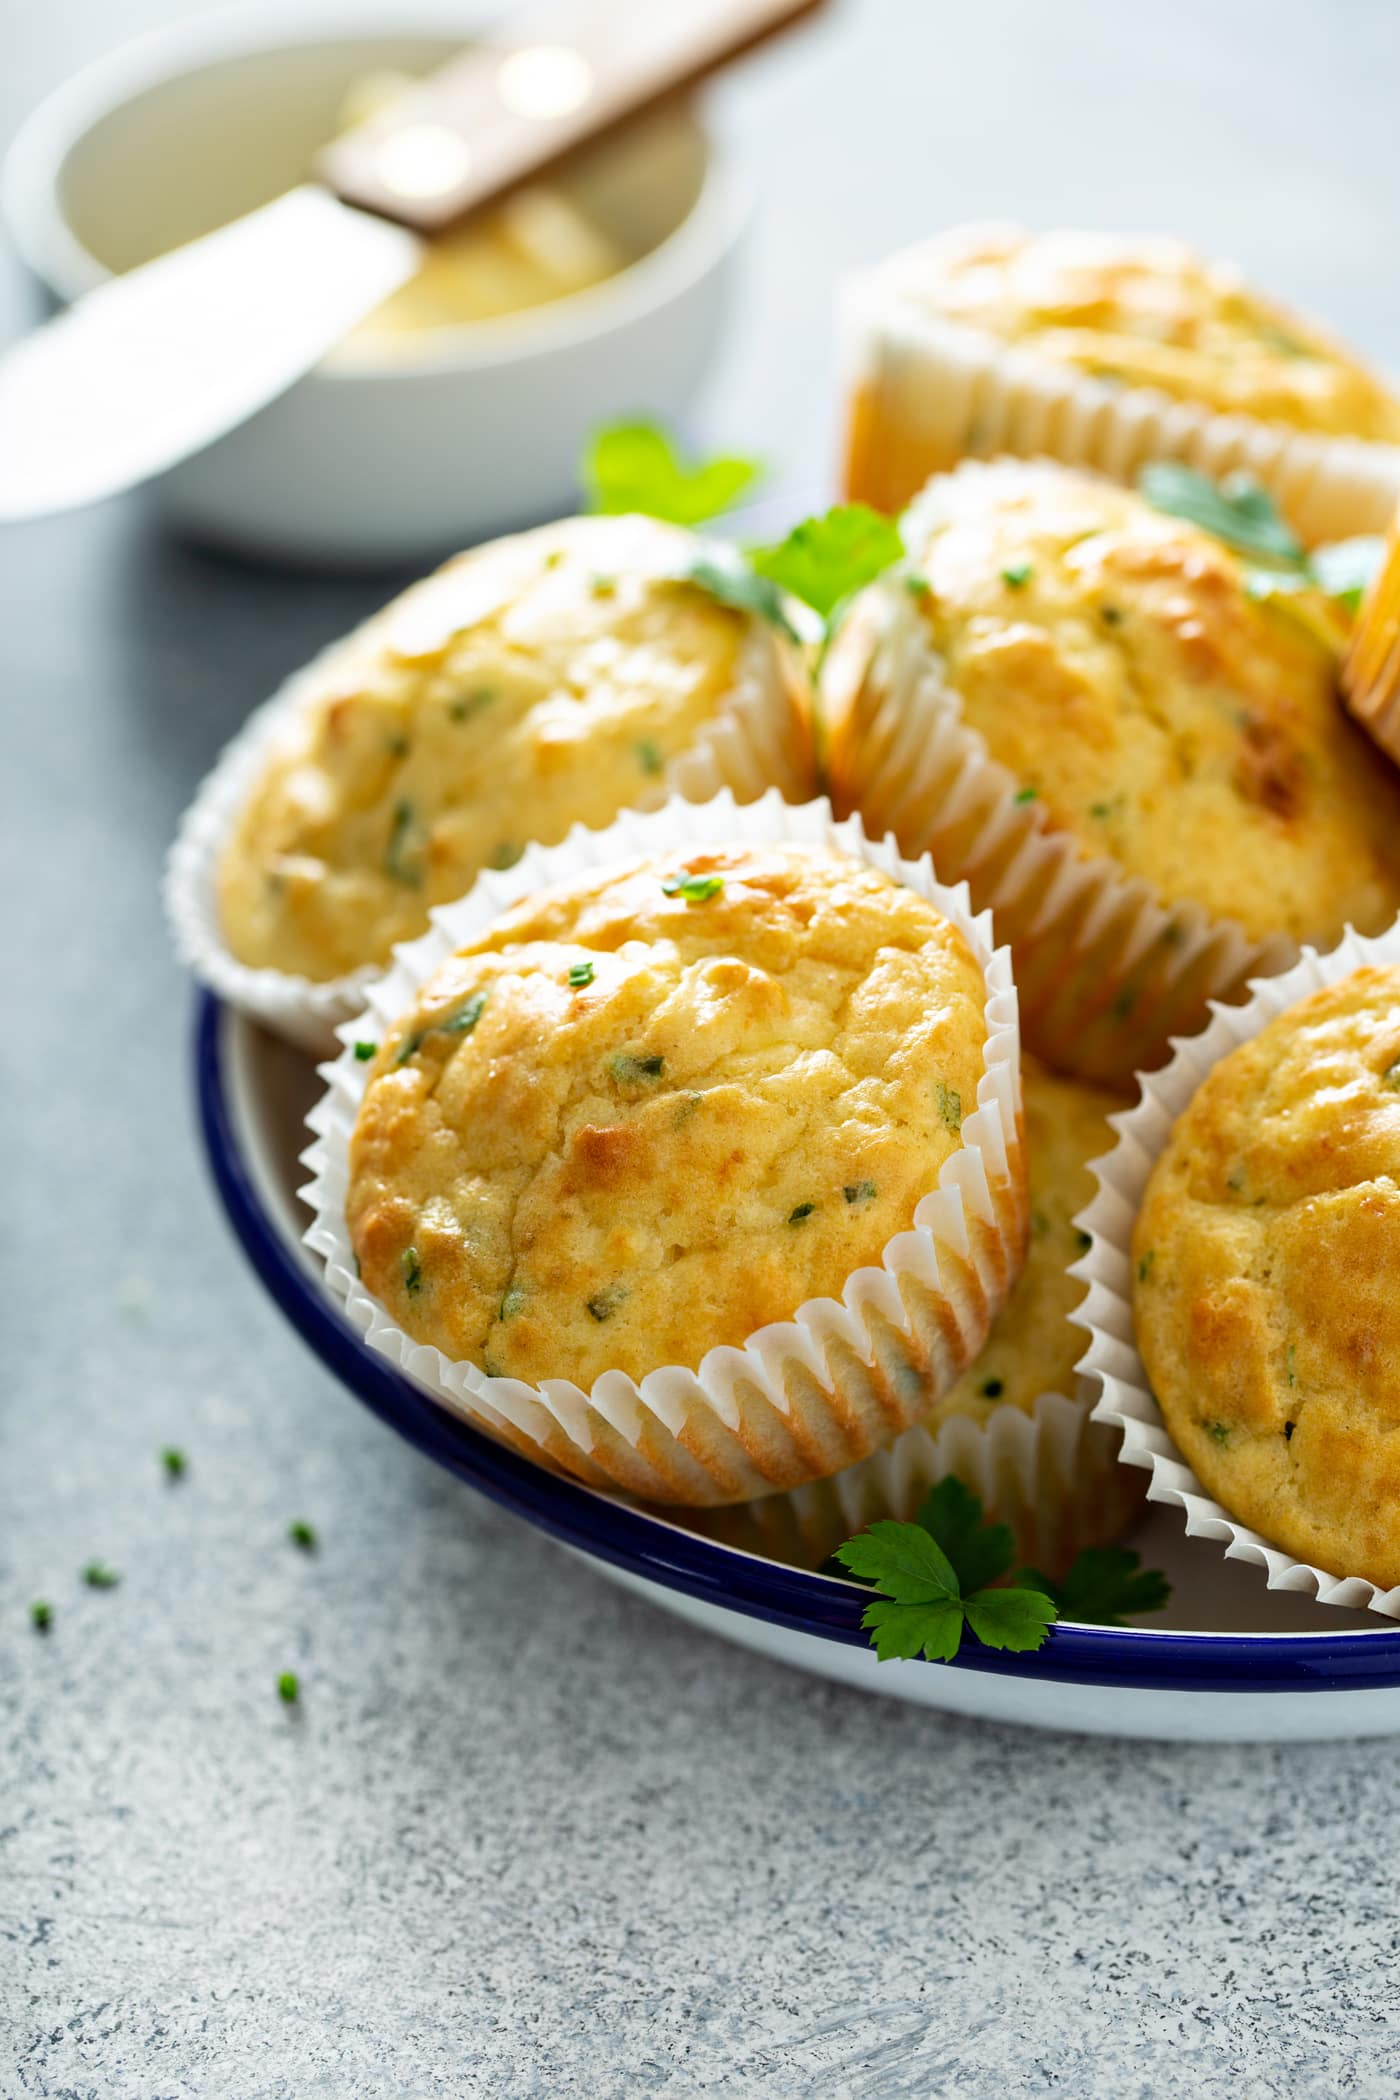 A plate of feta muffins in white paper muffin liners. There are a few parsley leaves on top.